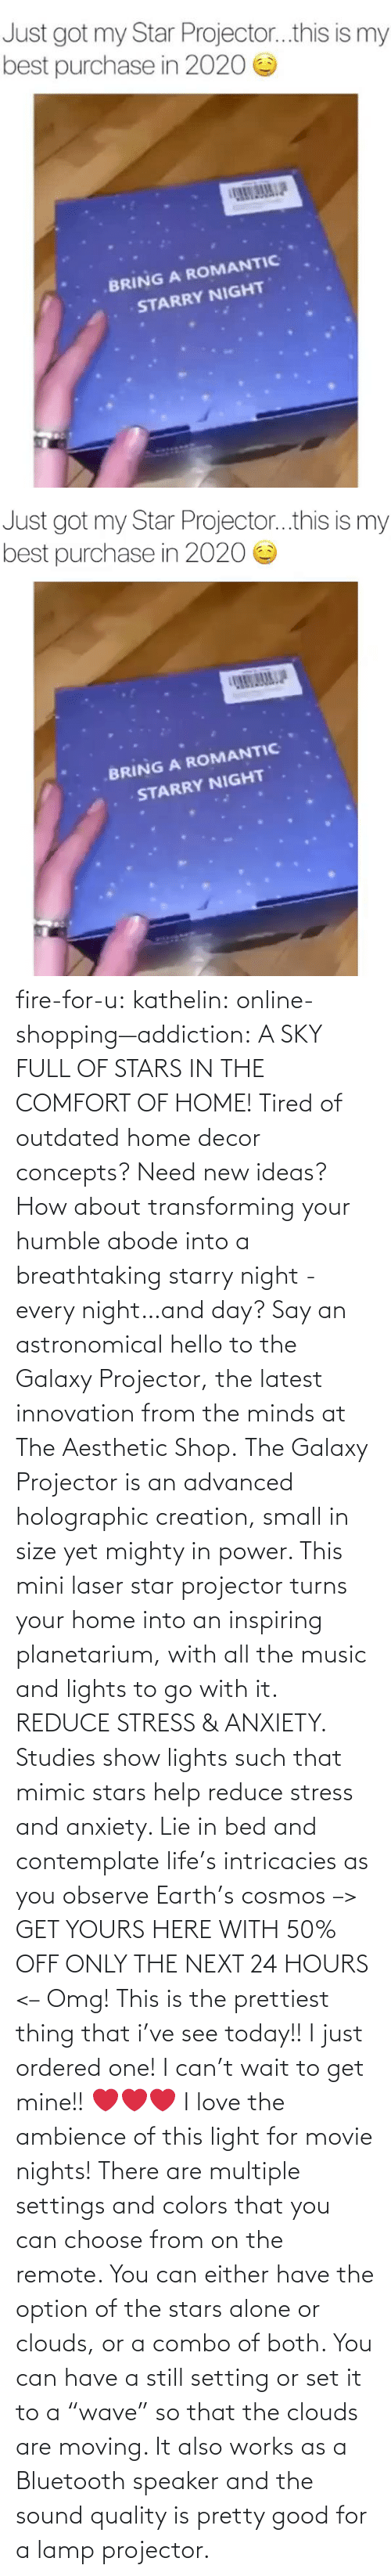 "mine: fire-for-u:  kathelin: online-shopping—addiction:  A SKY FULL OF STARS IN THE COMFORT OF HOME! Tired of outdated home decor concepts? Need new ideas? How about transforming your humble abode into a breathtaking starry night - every night…and day? Say an astronomical hello to the Galaxy Projector, the latest innovation from the minds at The Aesthetic Shop. The Galaxy Projector is an advanced holographic creation, small in size yet mighty in power. This mini laser star projector turns your home into an inspiring planetarium, with all the music and lights to go with it. REDUCE STRESS & ANXIETY. Studies show lights such that mimic stars help reduce stress and anxiety. Lie in bed and contemplate life's intricacies as you observe Earth's cosmos  –> GET YOURS HERE WITH 50% OFF ONLY THE NEXT 24 HOURS <–   Omg! This is the prettiest thing that i've see today!! I just ordered one! I can't wait to get mine!! ❤️️❤️️❤️️  I love the ambience of this light for movie nights! There are multiple settings and colors that you can choose from on the remote. You can either have the option of the stars alone or clouds, or a combo of both. You can have a still setting or set it to a ""wave"" so that the clouds are moving. It also works as a Bluetooth speaker and the sound quality is pretty good for a lamp projector."